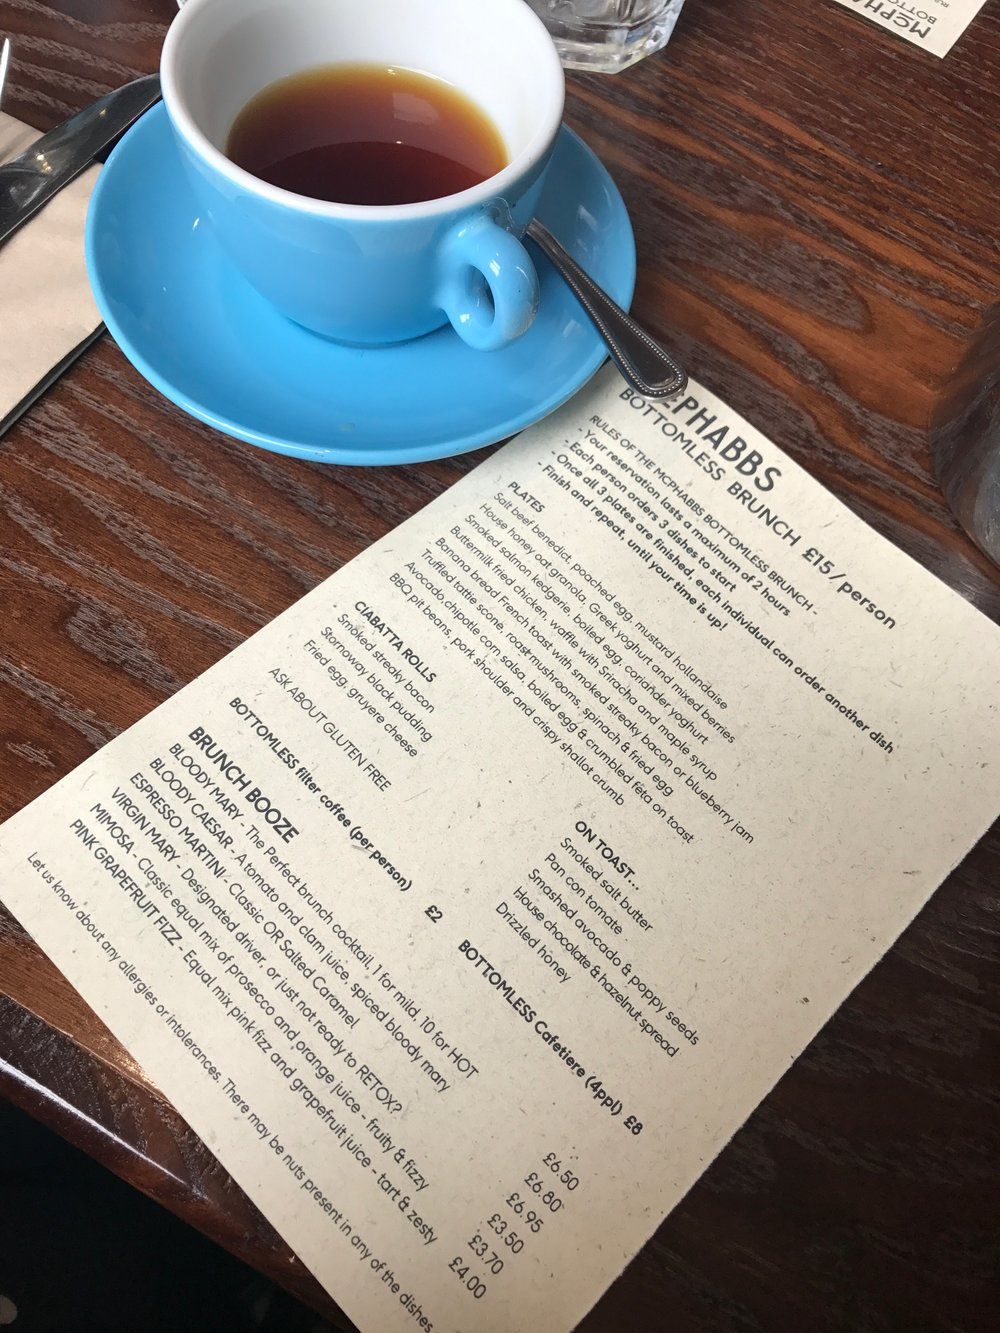 Bottomless brunch menu + filter coffee